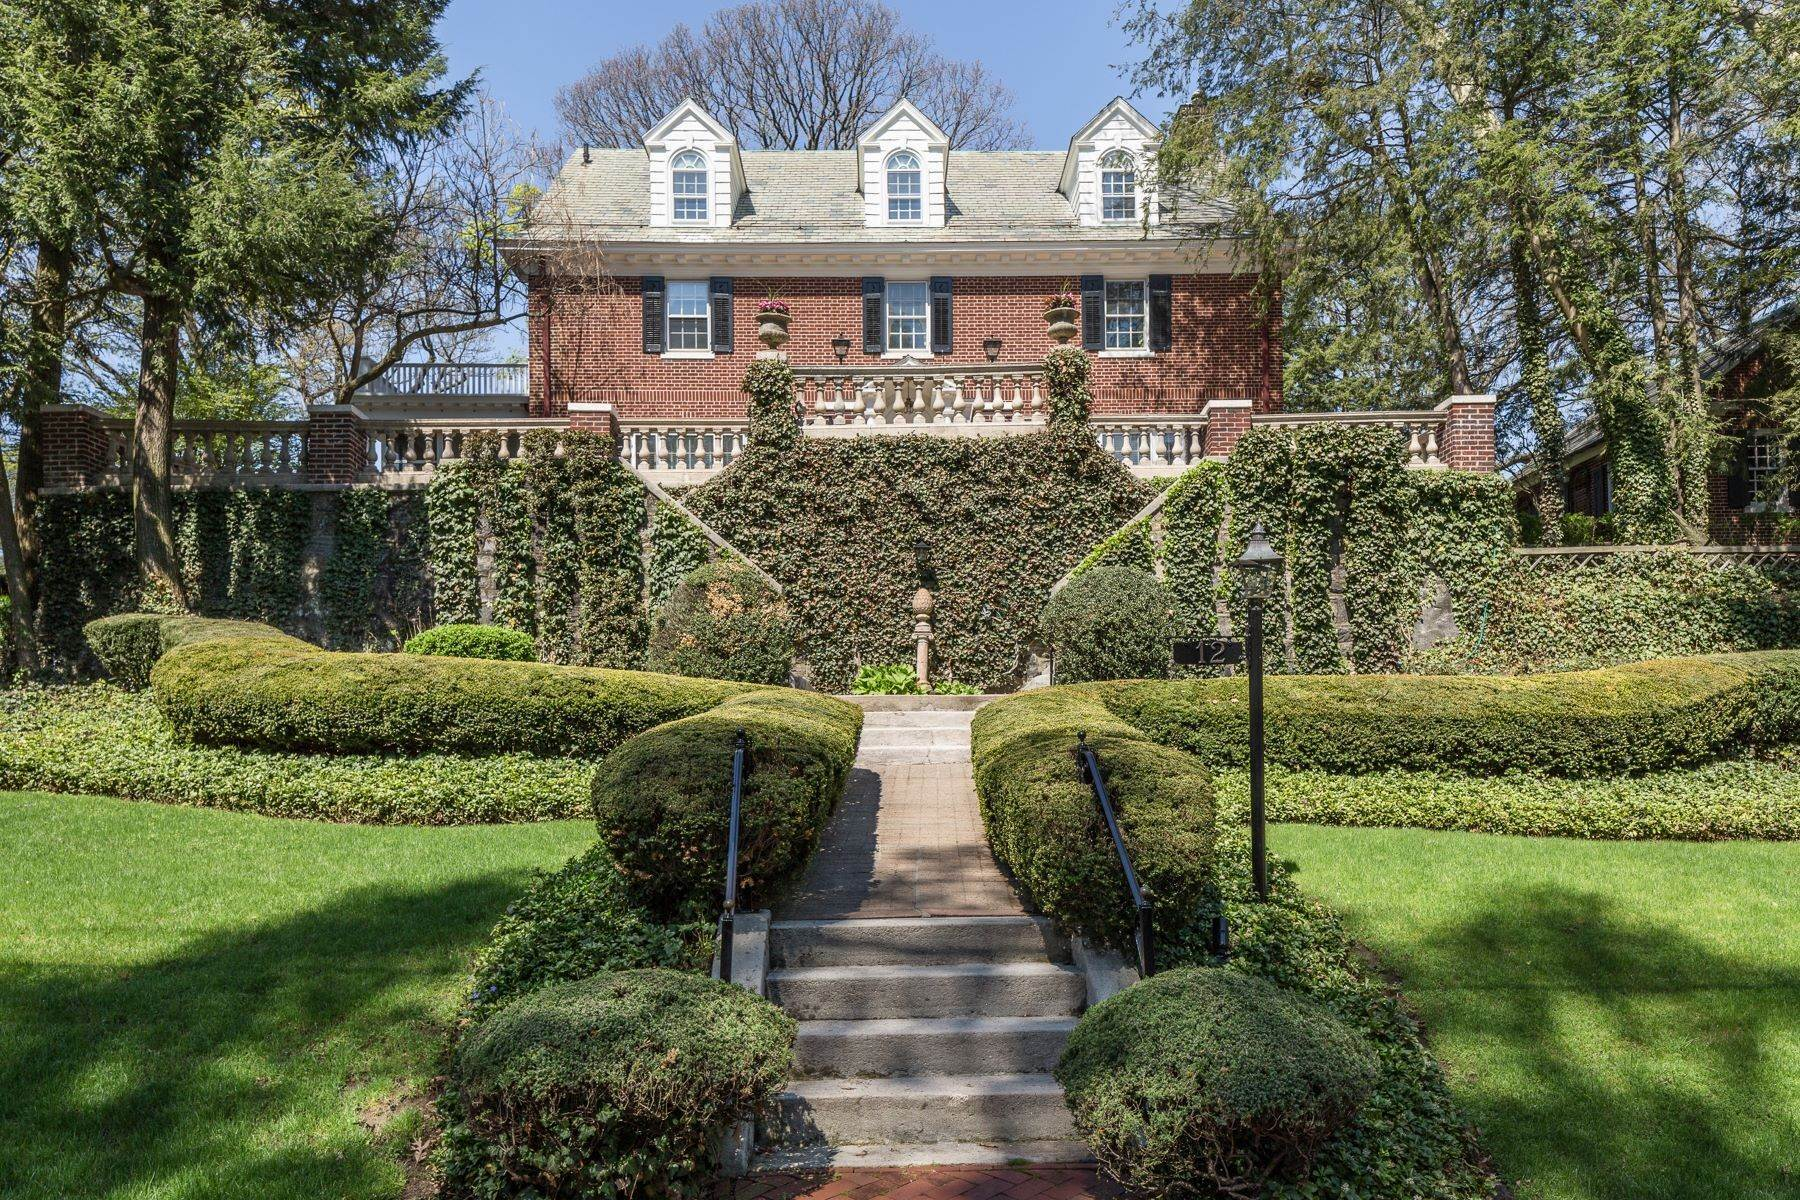 Single Family Homes for Sale at Welcome To 12 Plateau Circle East 12 Plateau Circle E Bronxville, New York 10708 United States